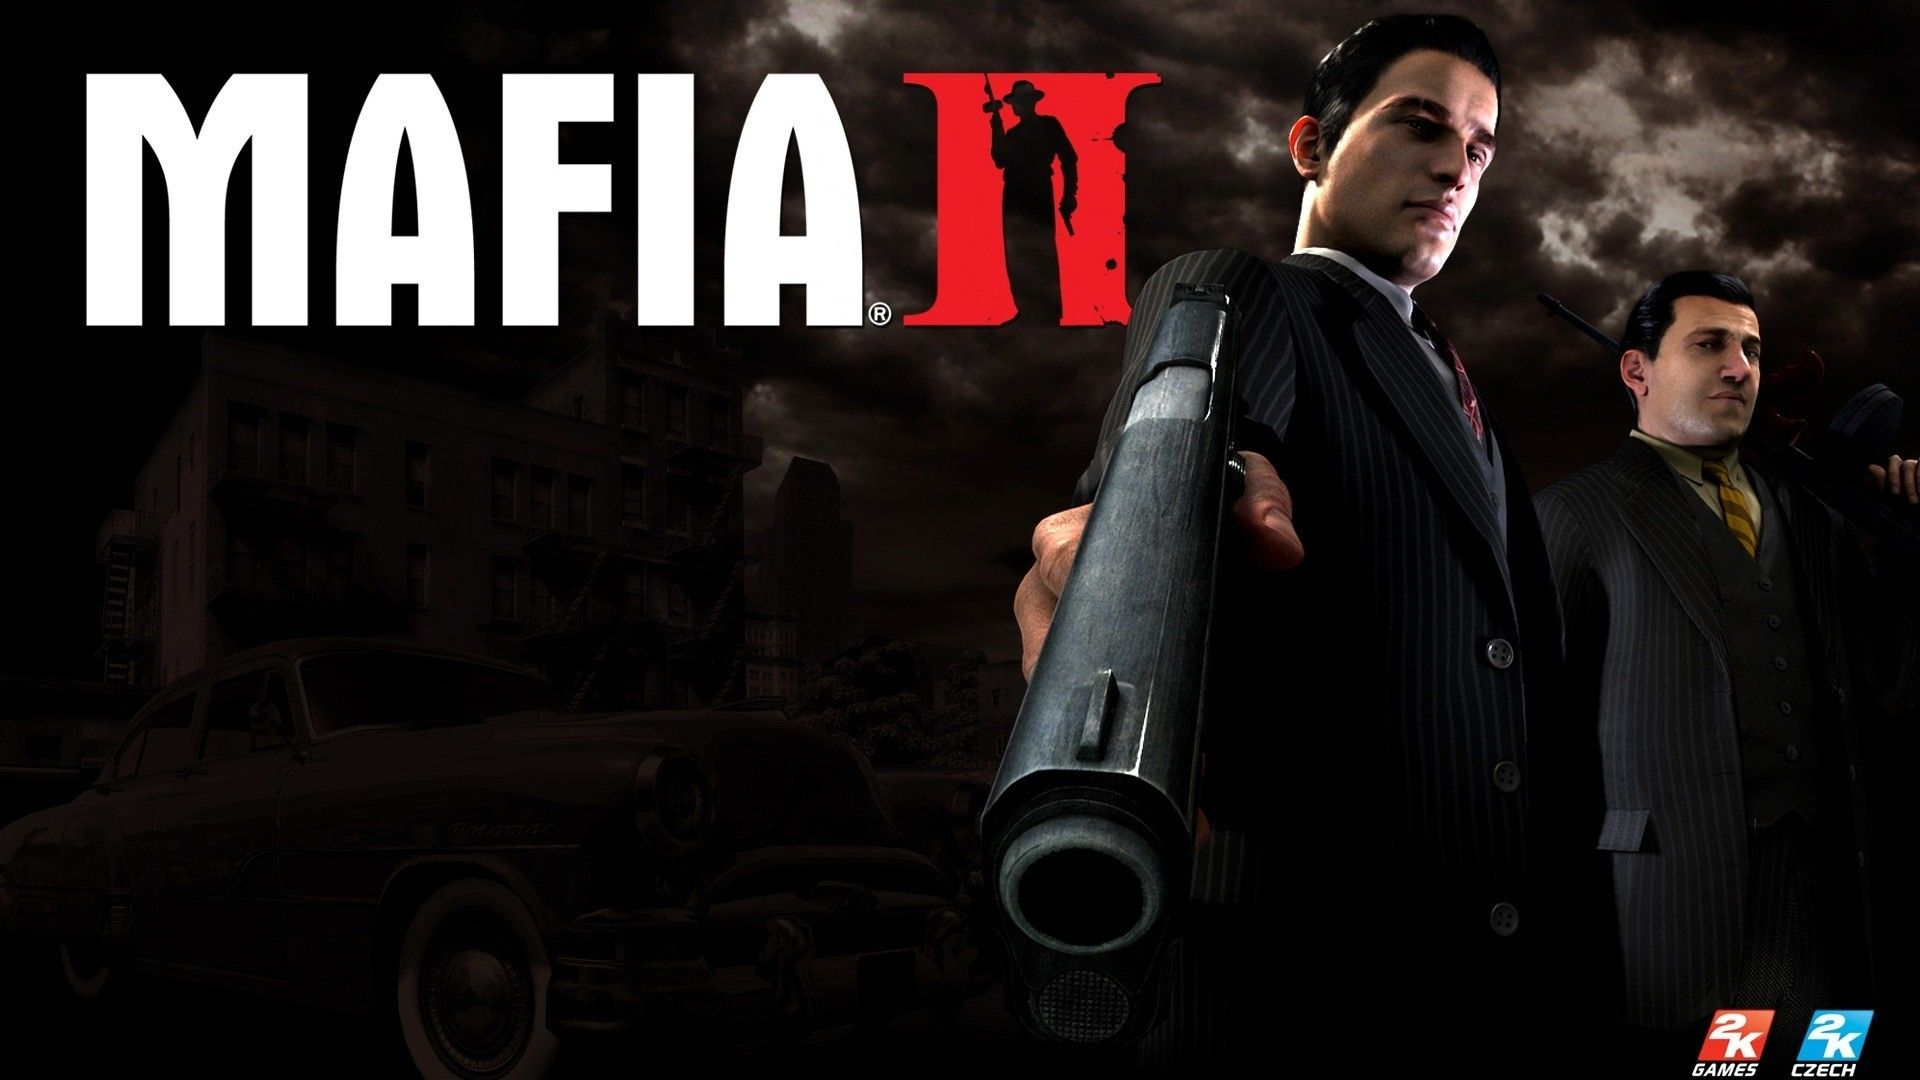 Hd Mafia Ii Wallpapers Mafia 2 Mafia Game Mafia Wallpaper